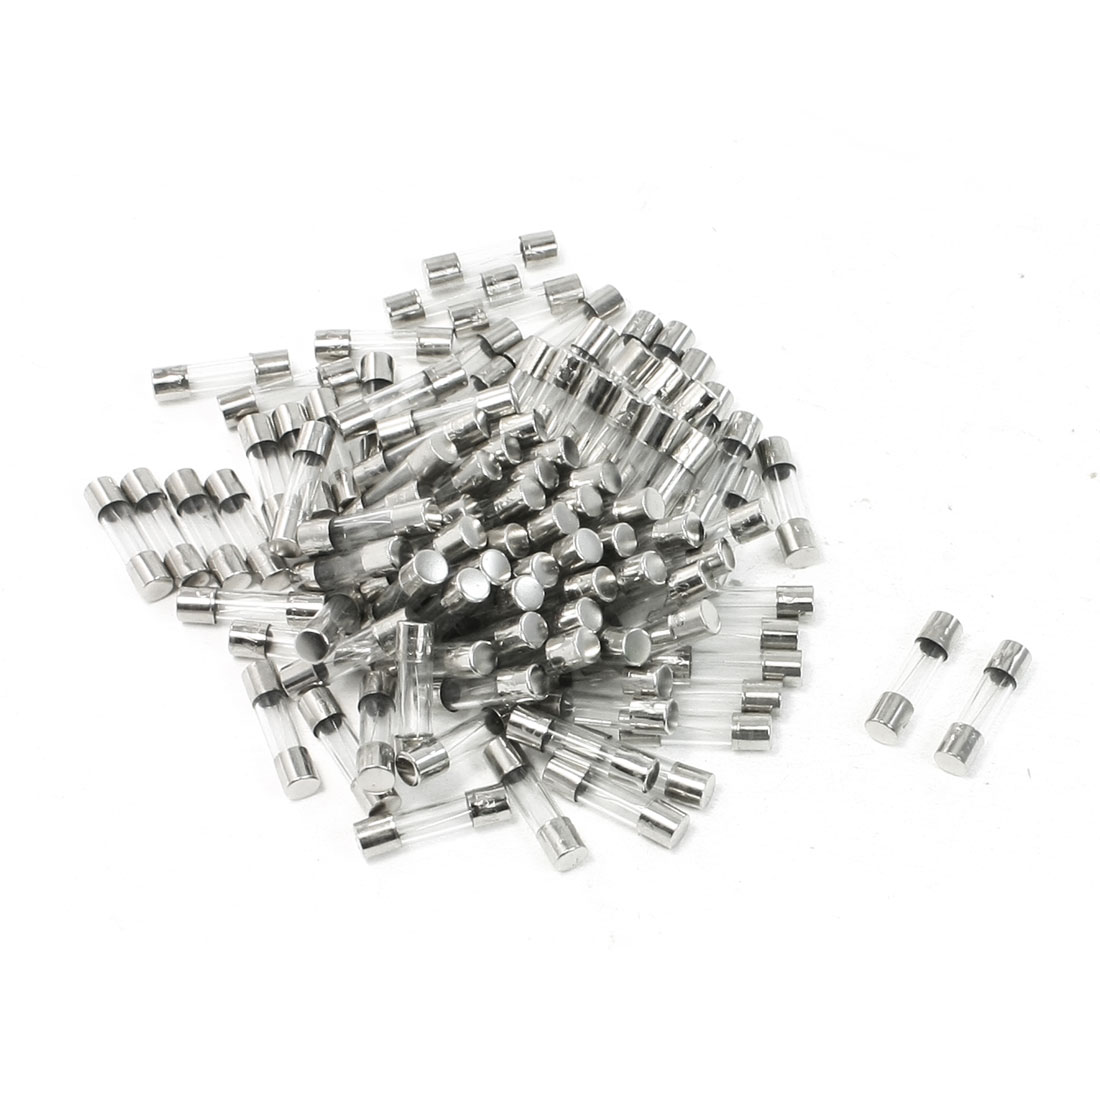 100 Pcs Fast Blow Cylinder Shape 5mm x 20mm Glass Tube Fuses 250V 4A Amp